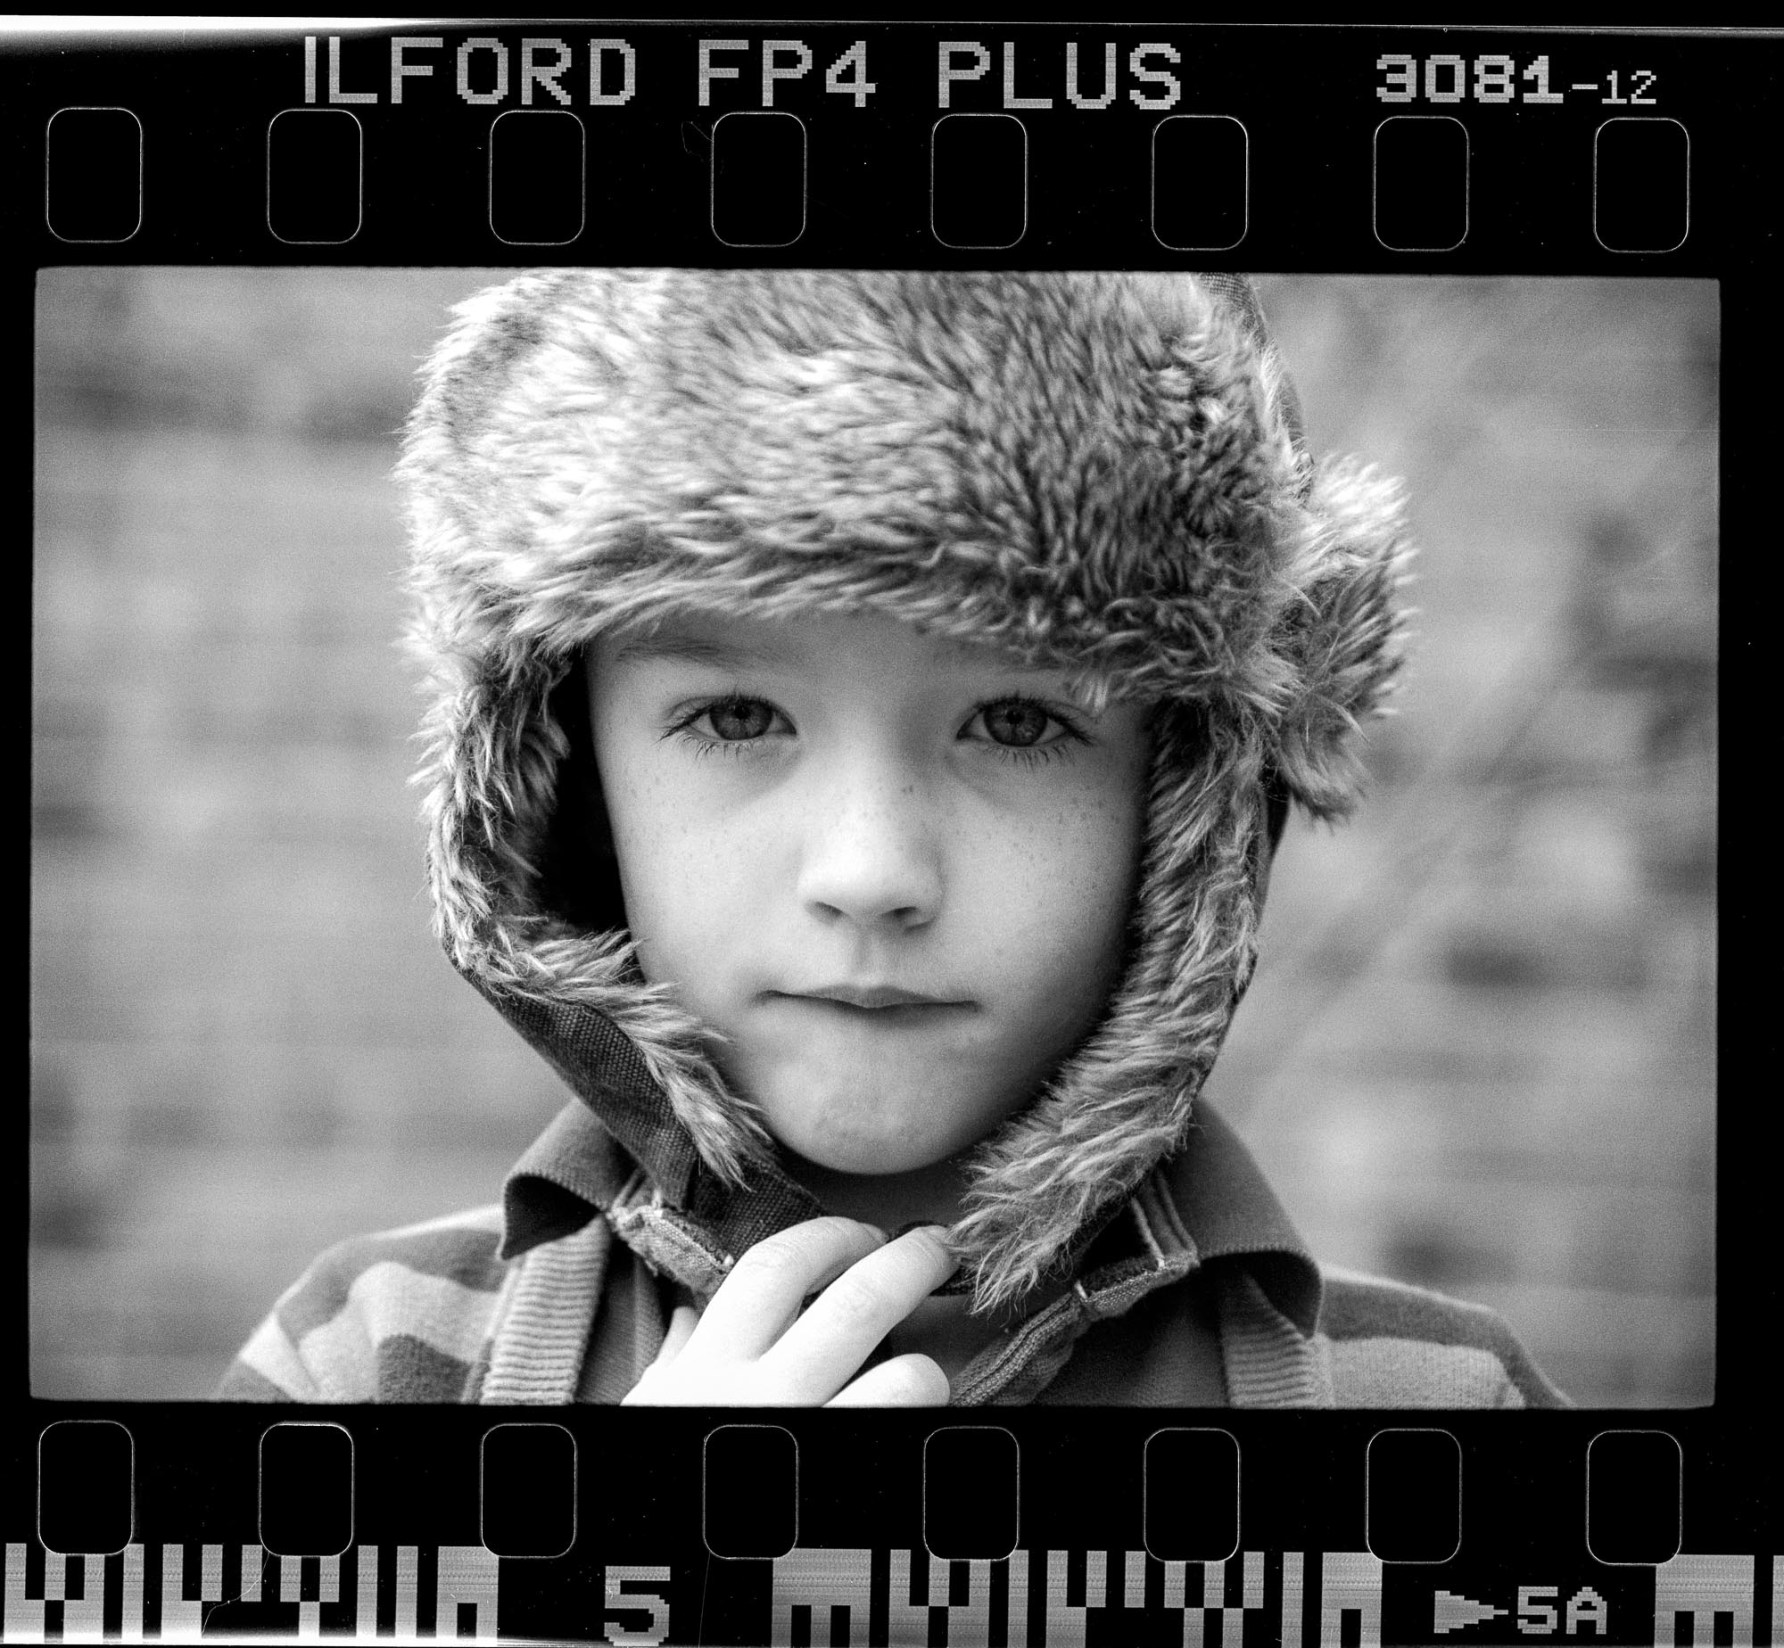 black and white portrait shot on 35mm ilford fp4 plus film